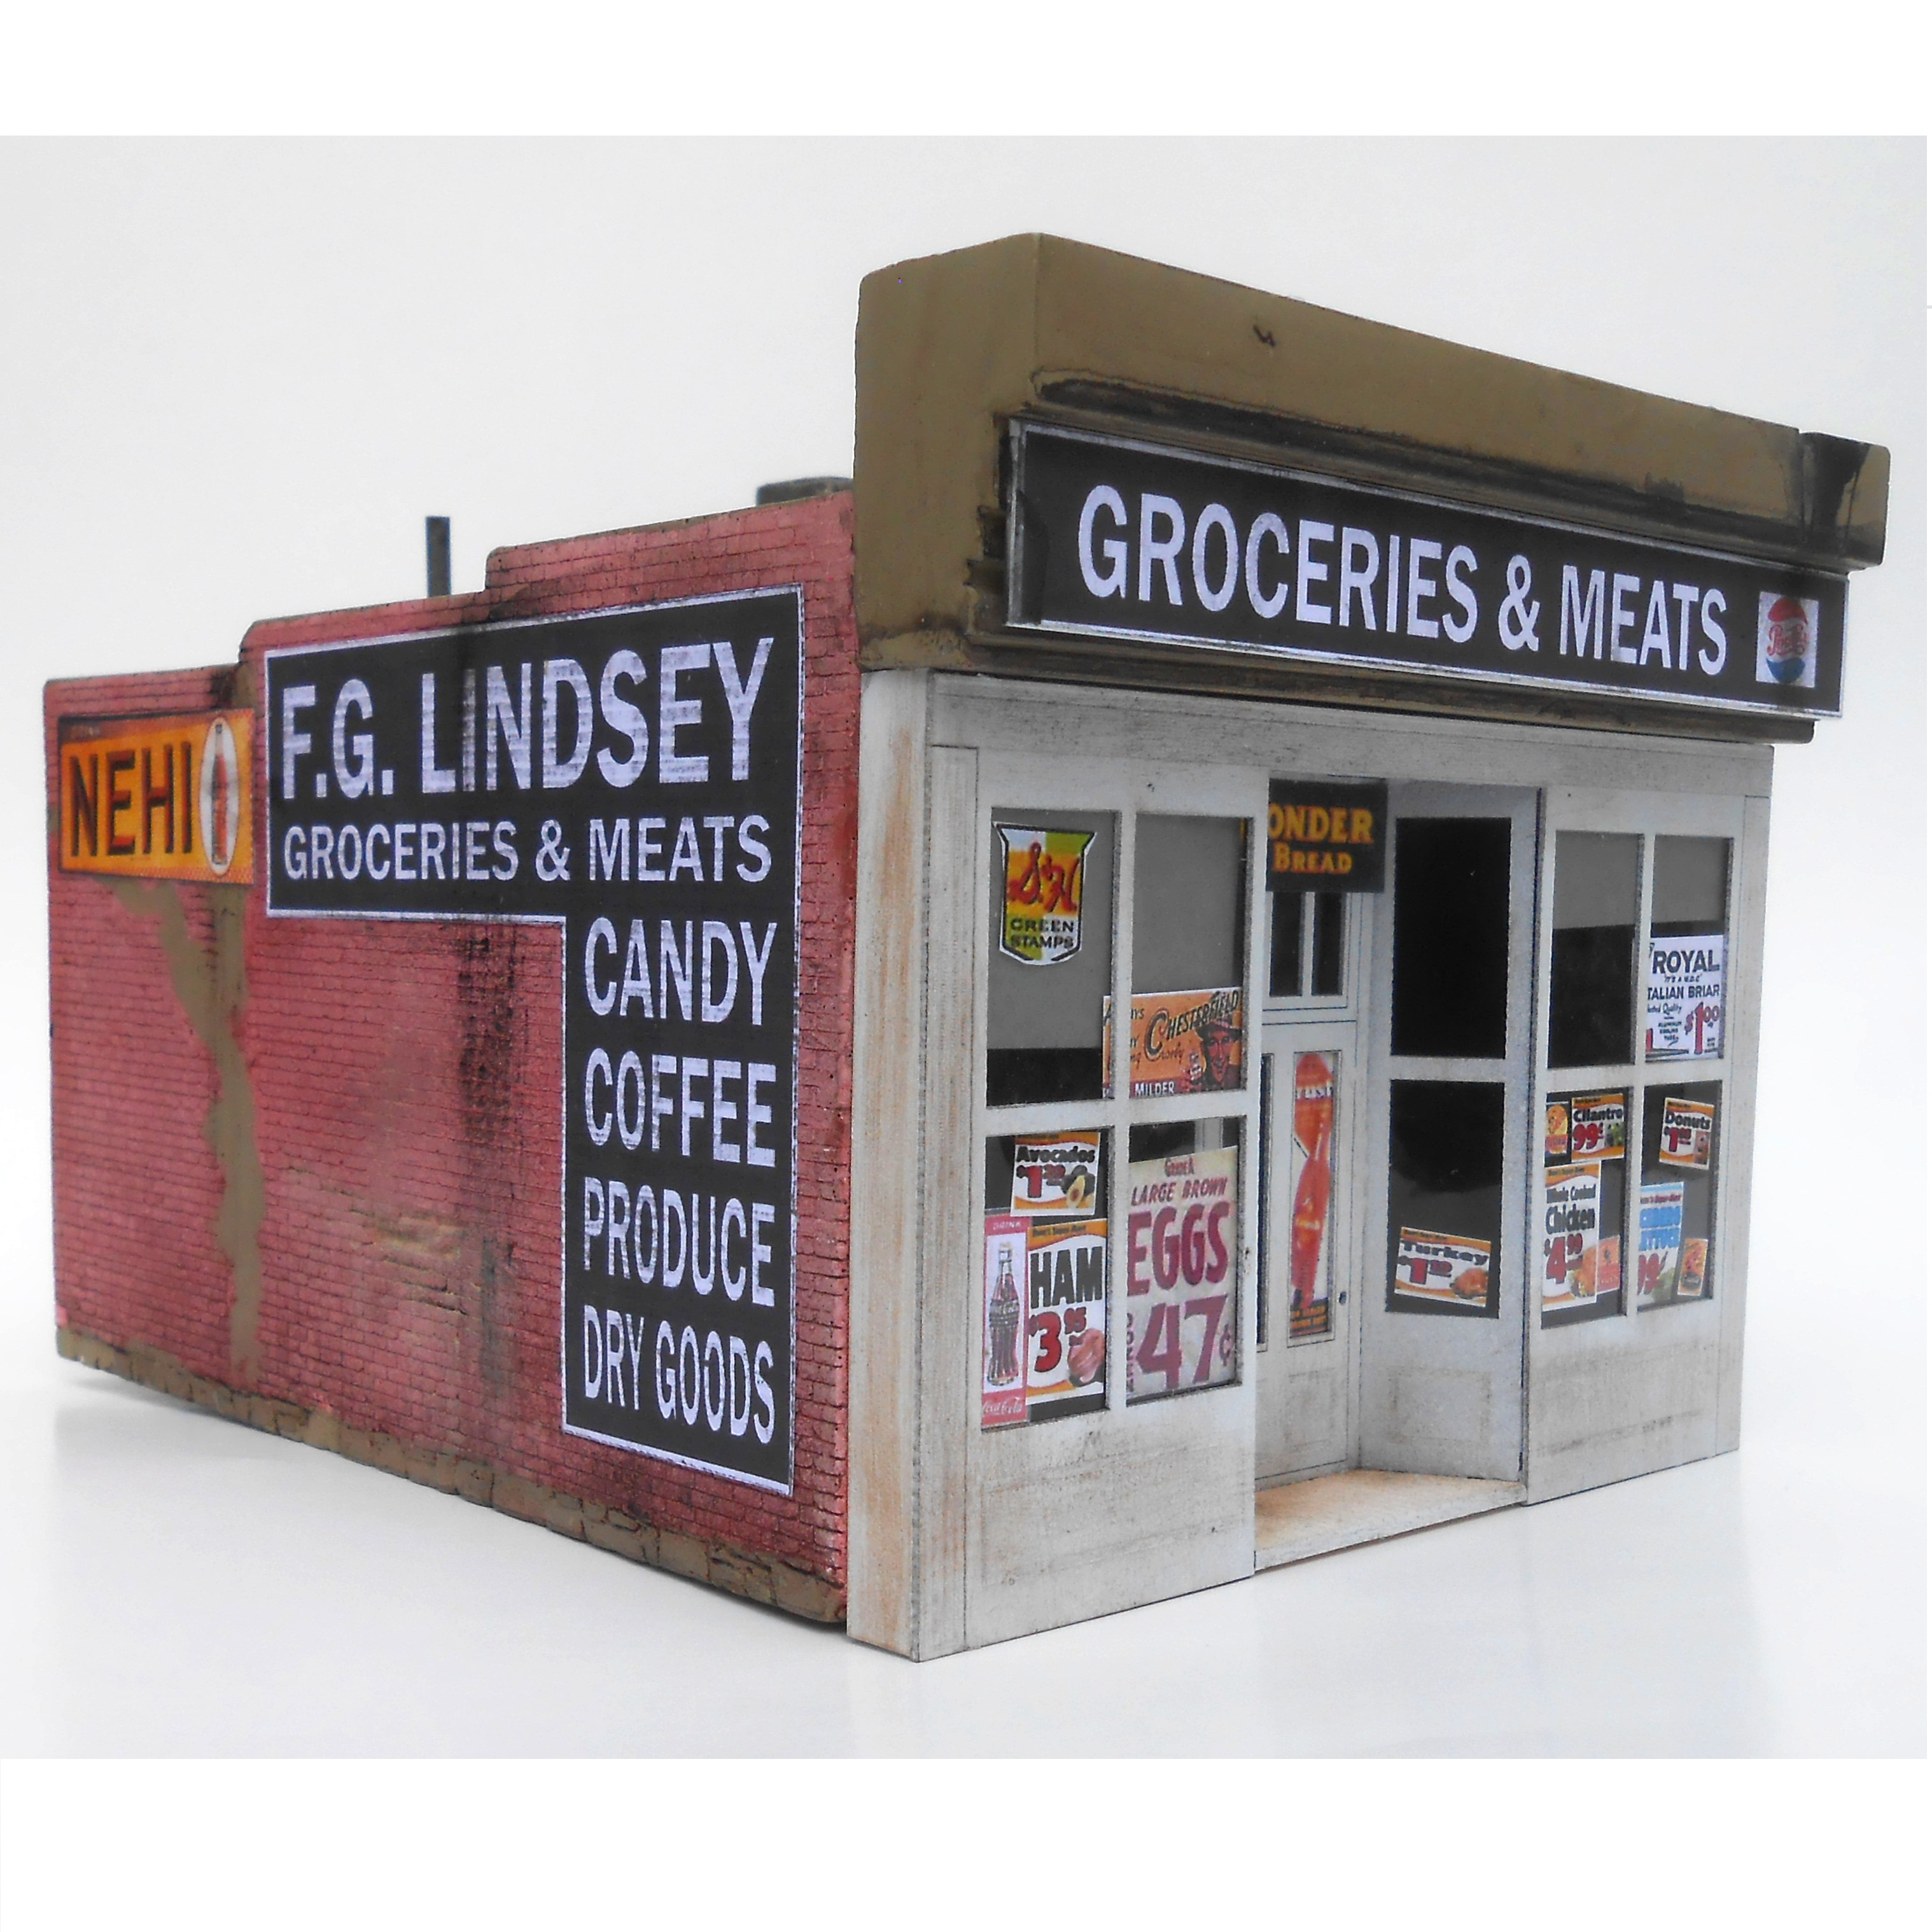 Lindsey's Grocery